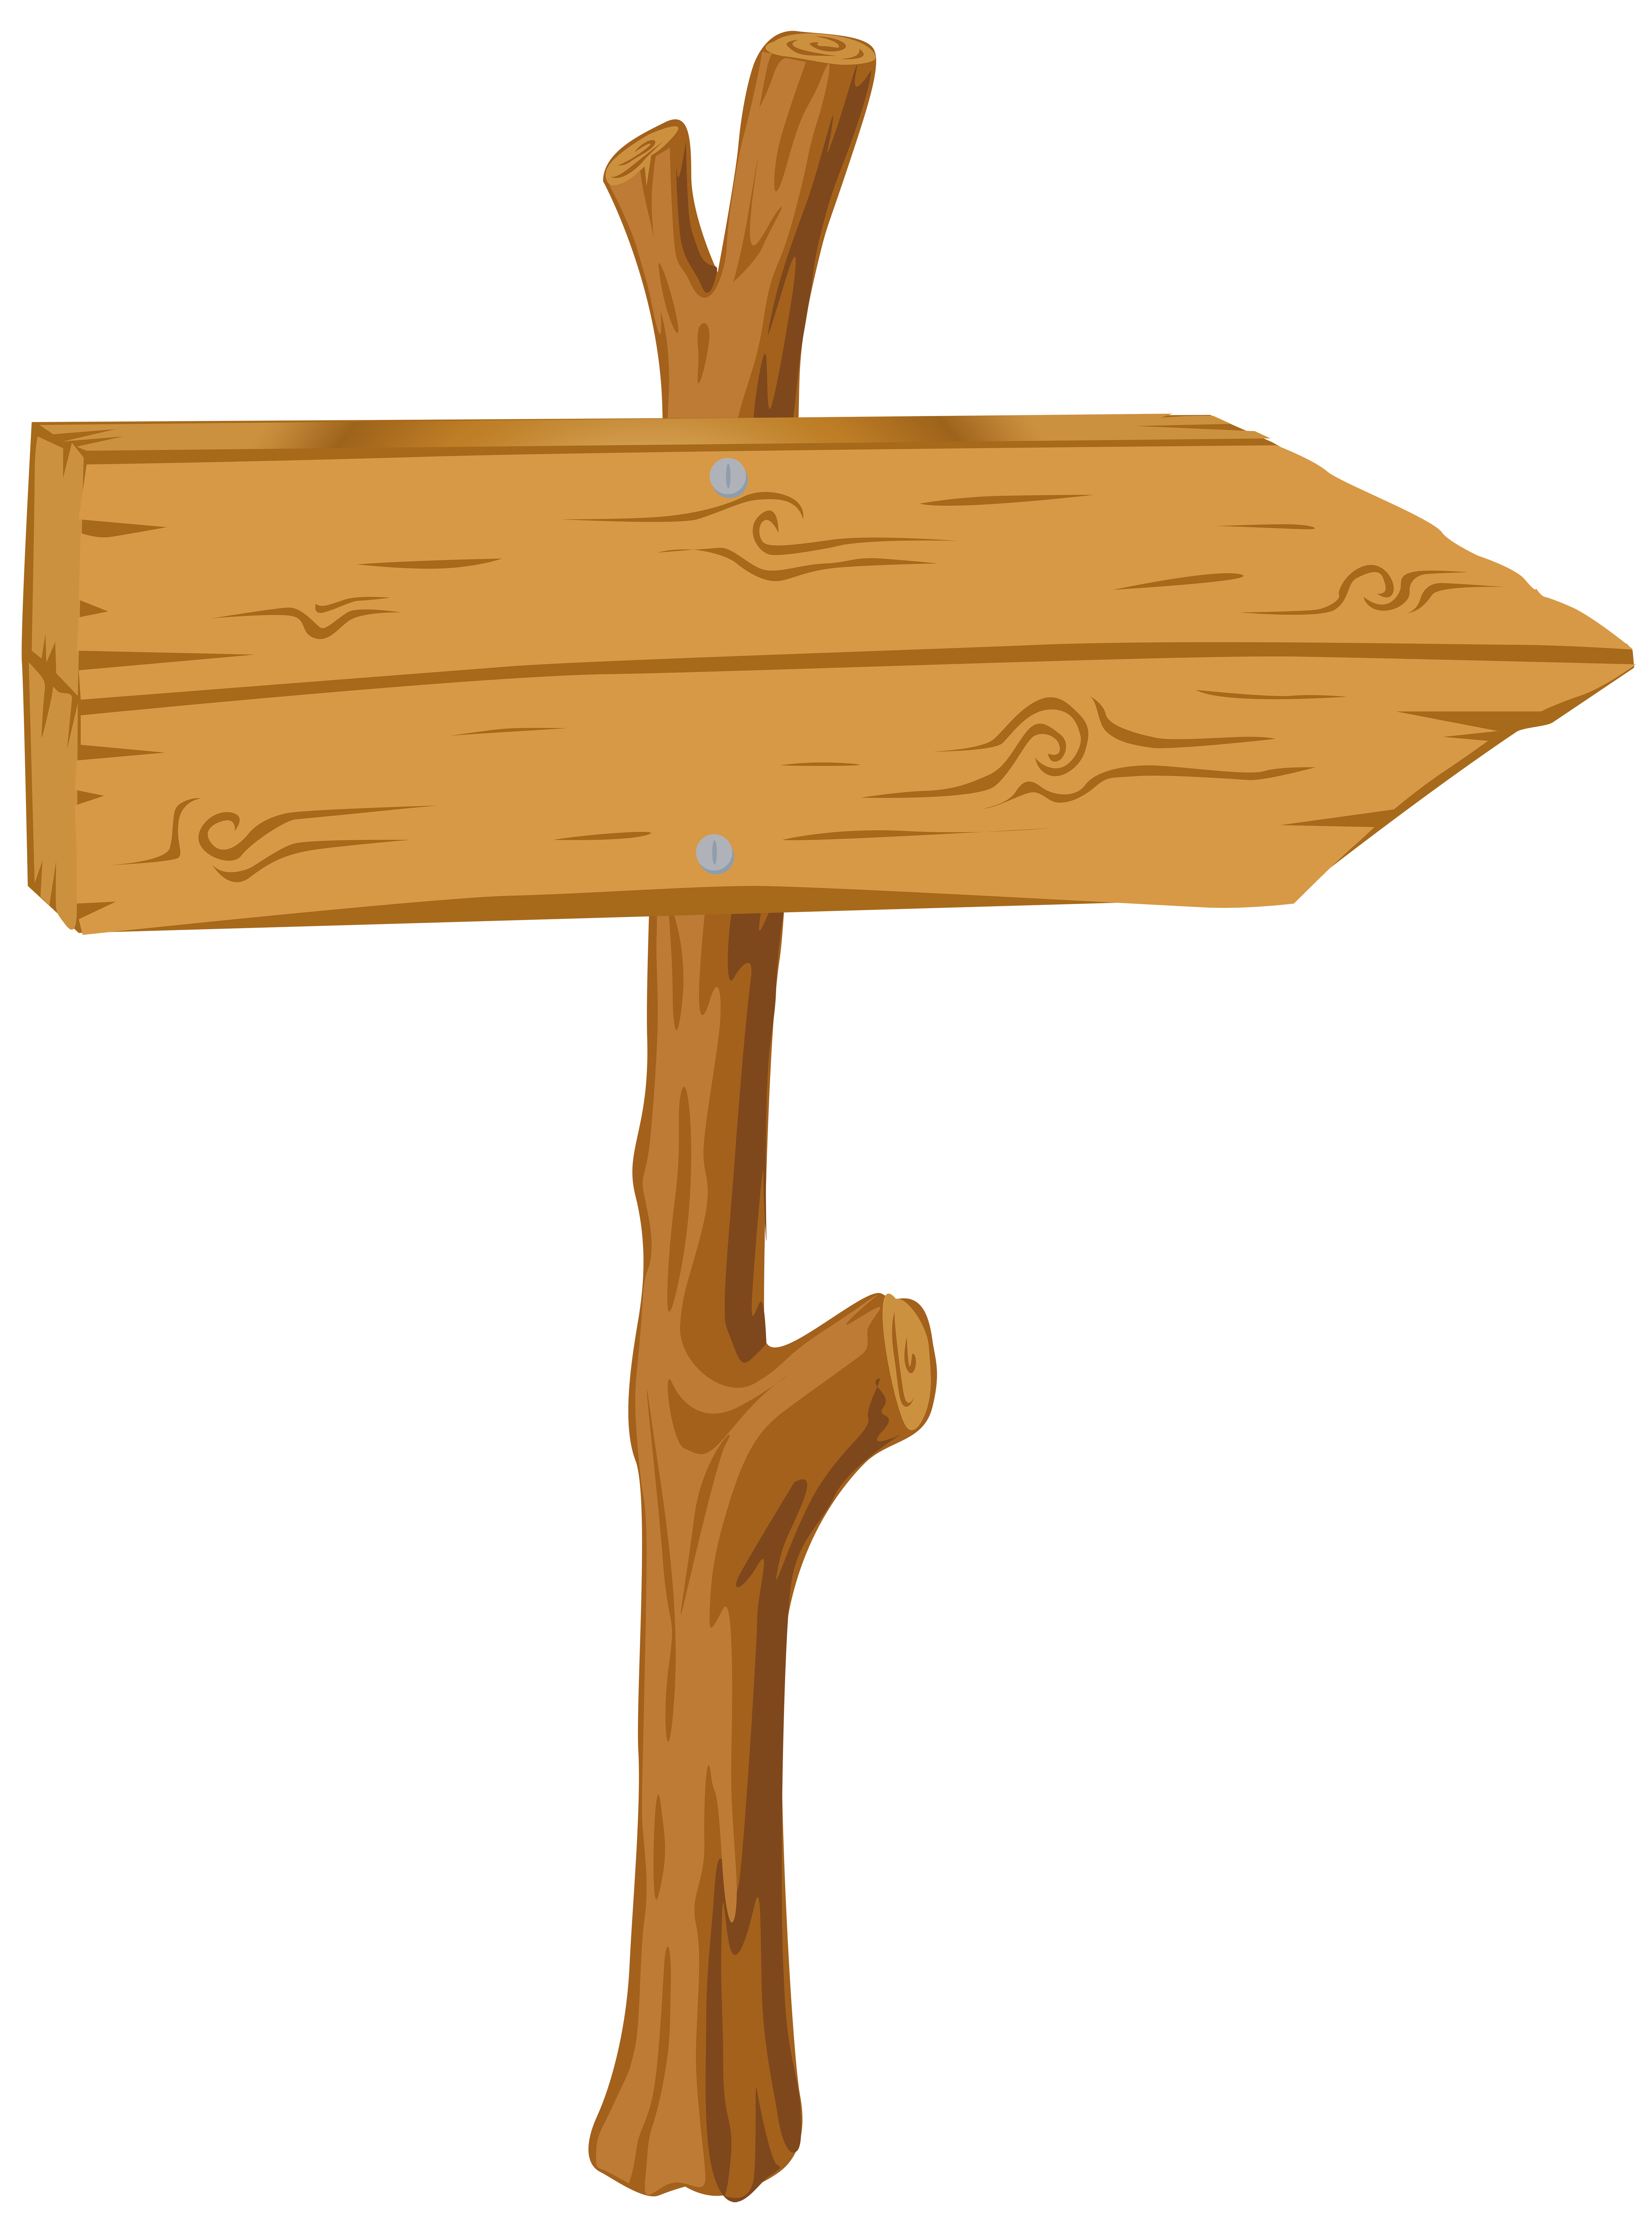 Square clipart rustic. Wooden sign transparent png